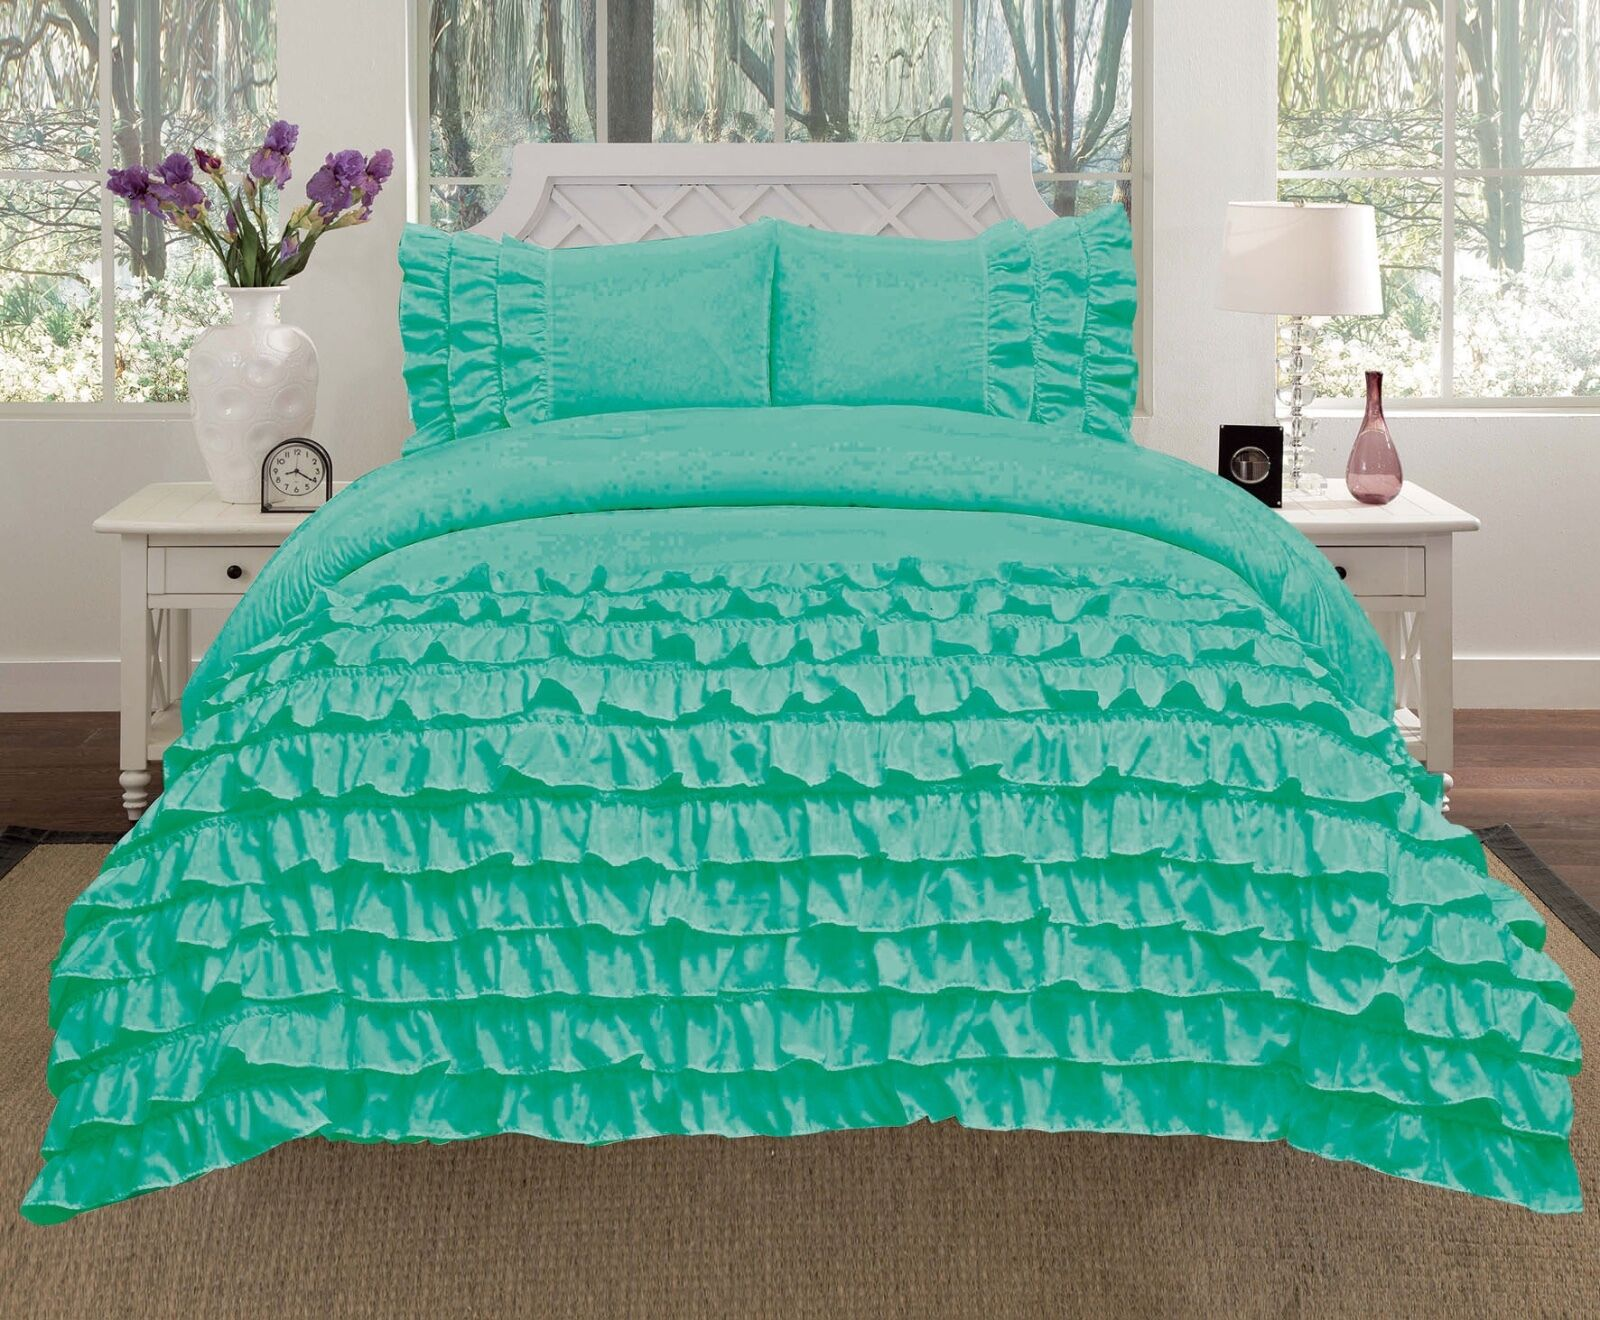 Miley 3-Piece Waterfall Ruffled Comforter Set Bedding - Mint Green